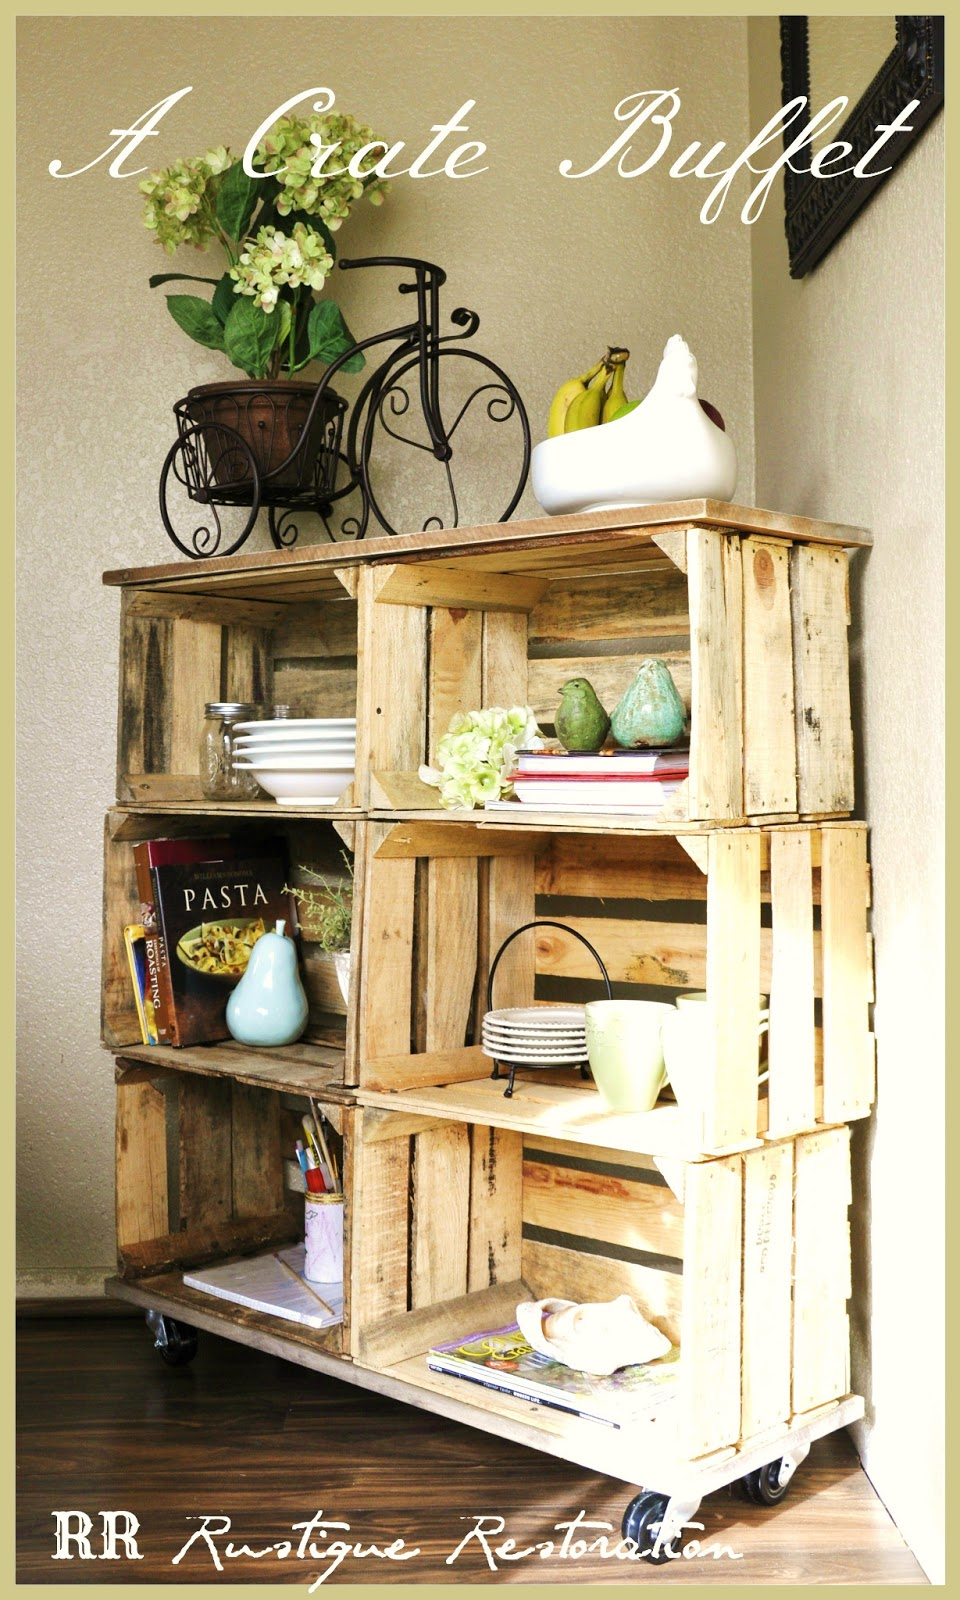 Rustique restoration diy crate buffet for Diy wooden crate ideas